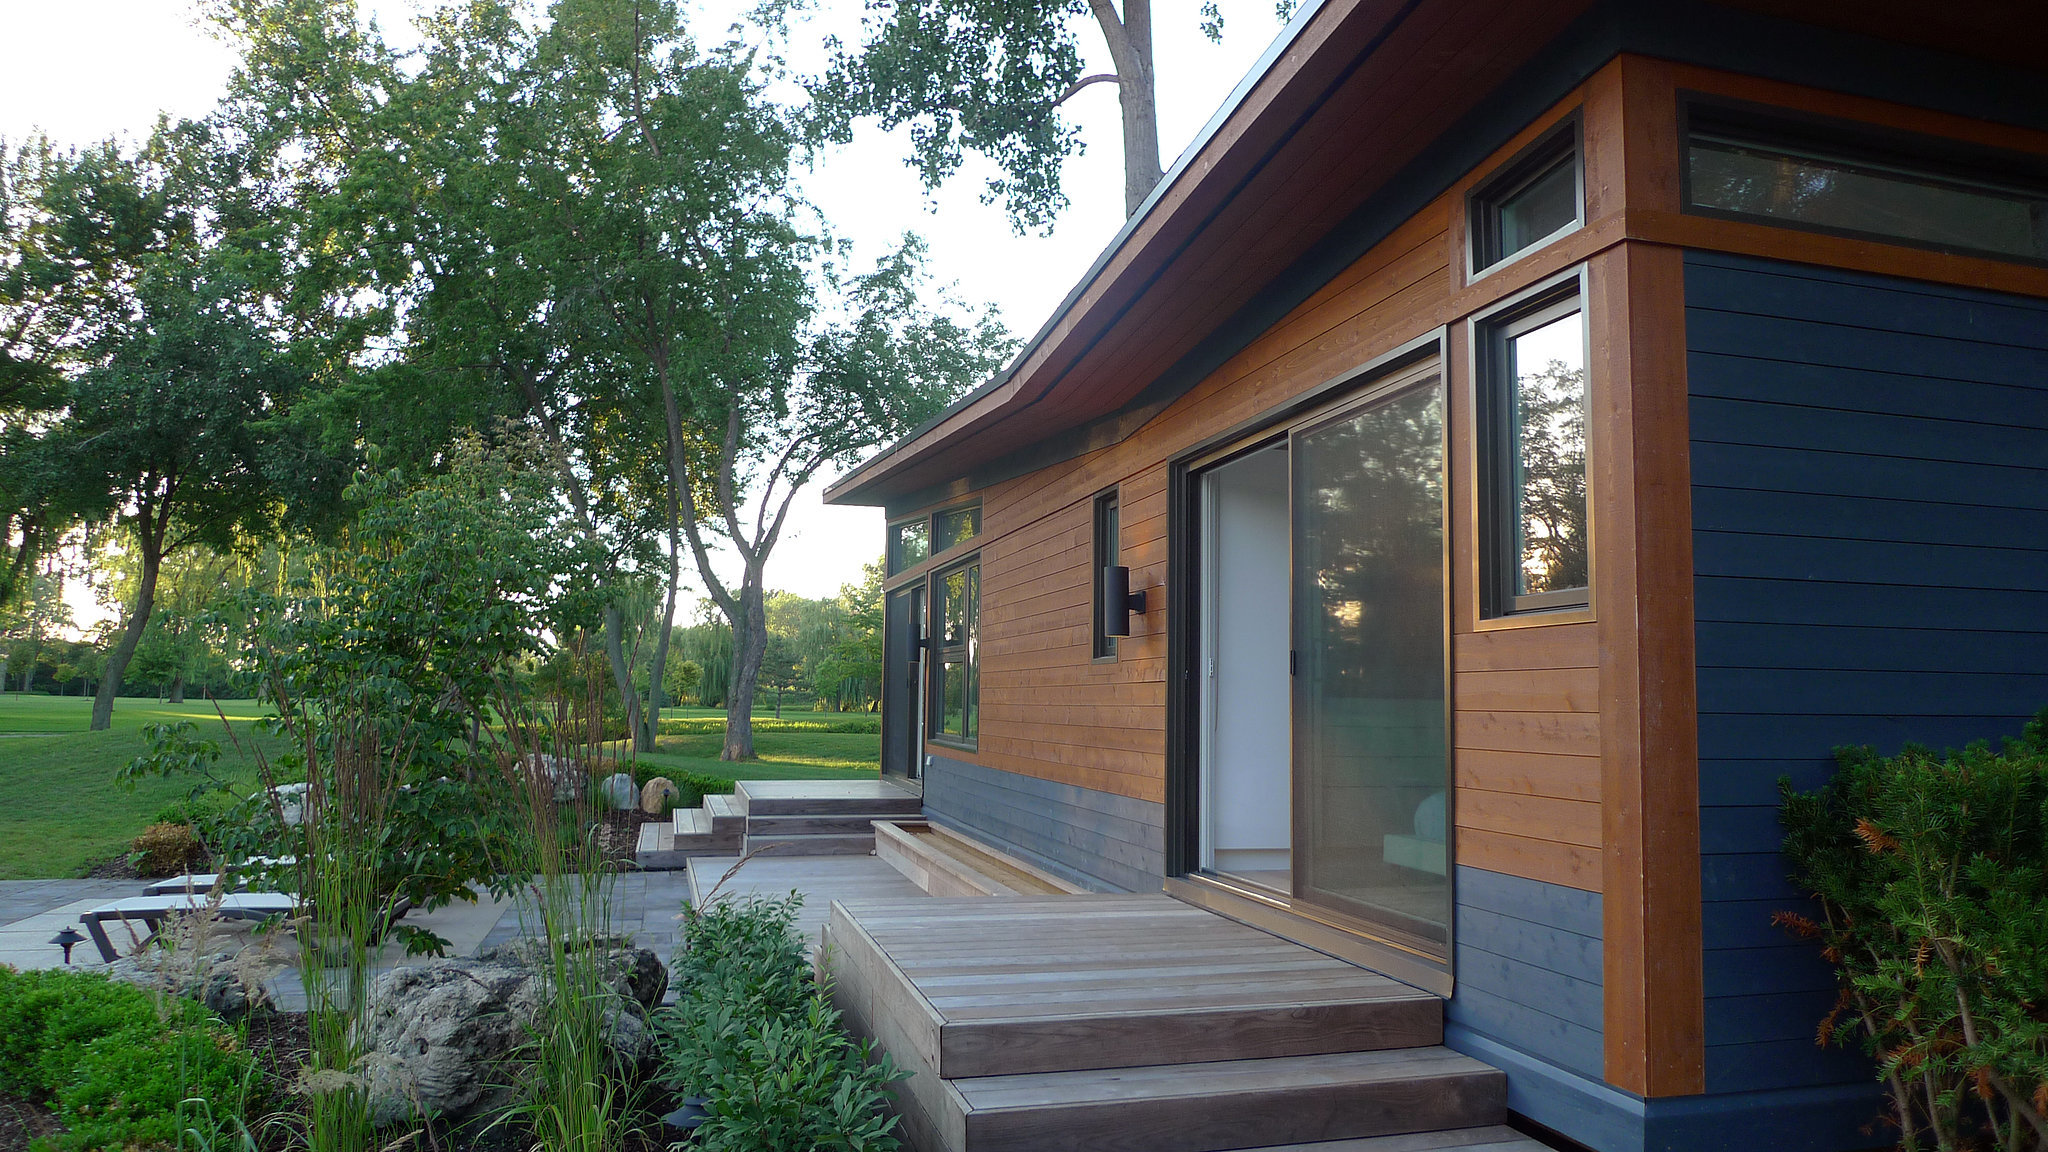 Of the best modular prefab homes on the market today 12 tiny homes